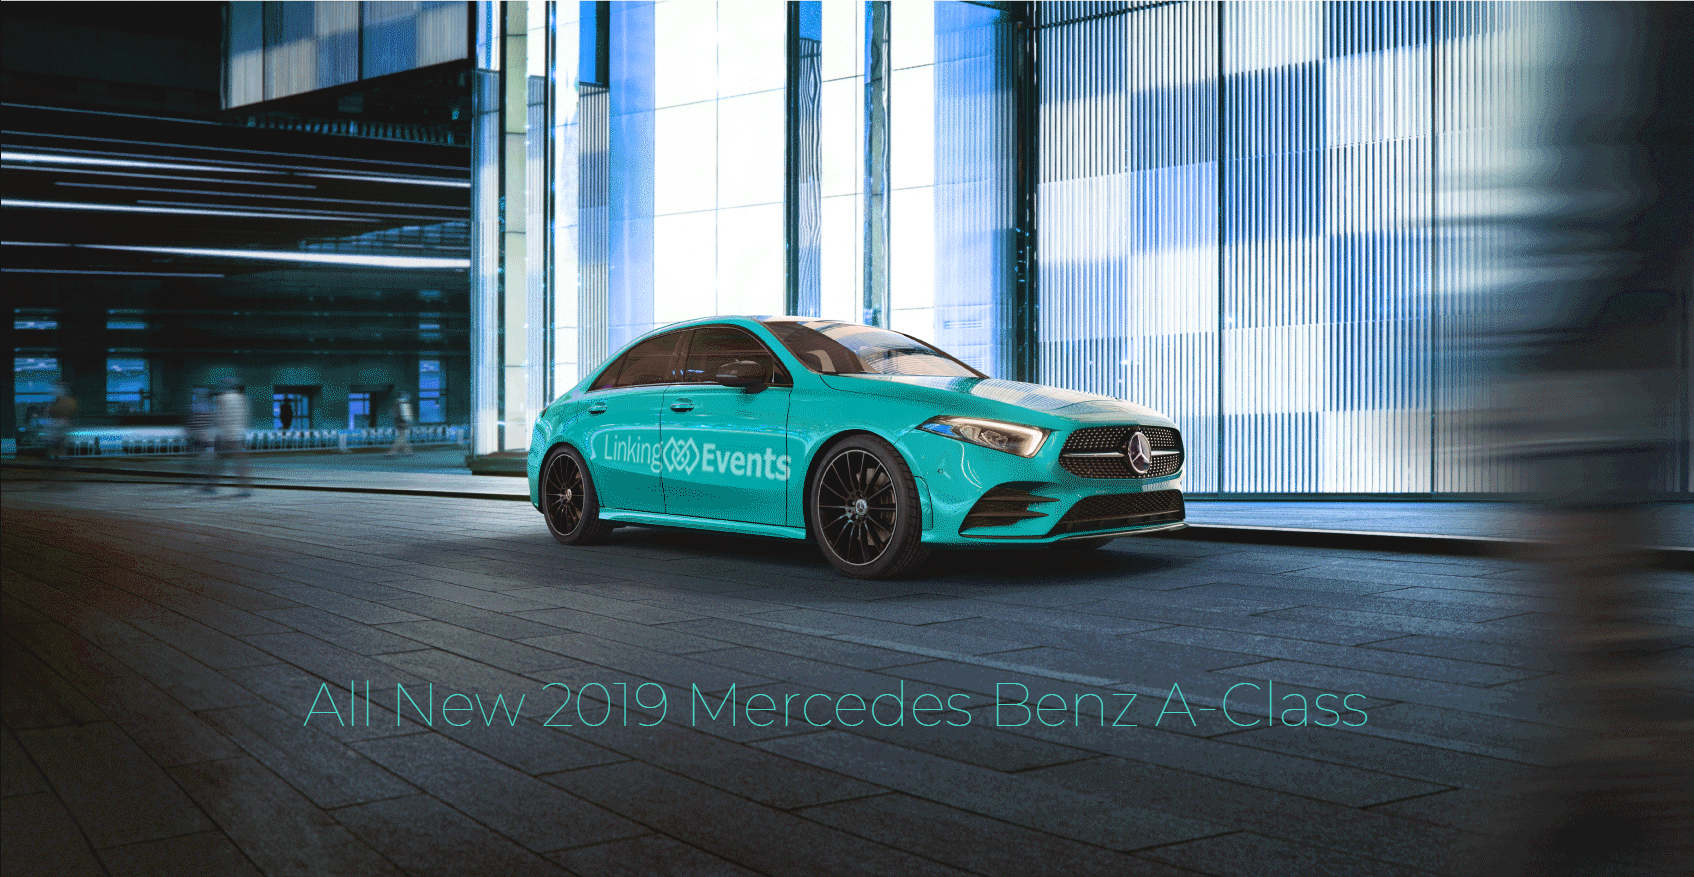 All New 2019 Mercedes-Benz A-Class